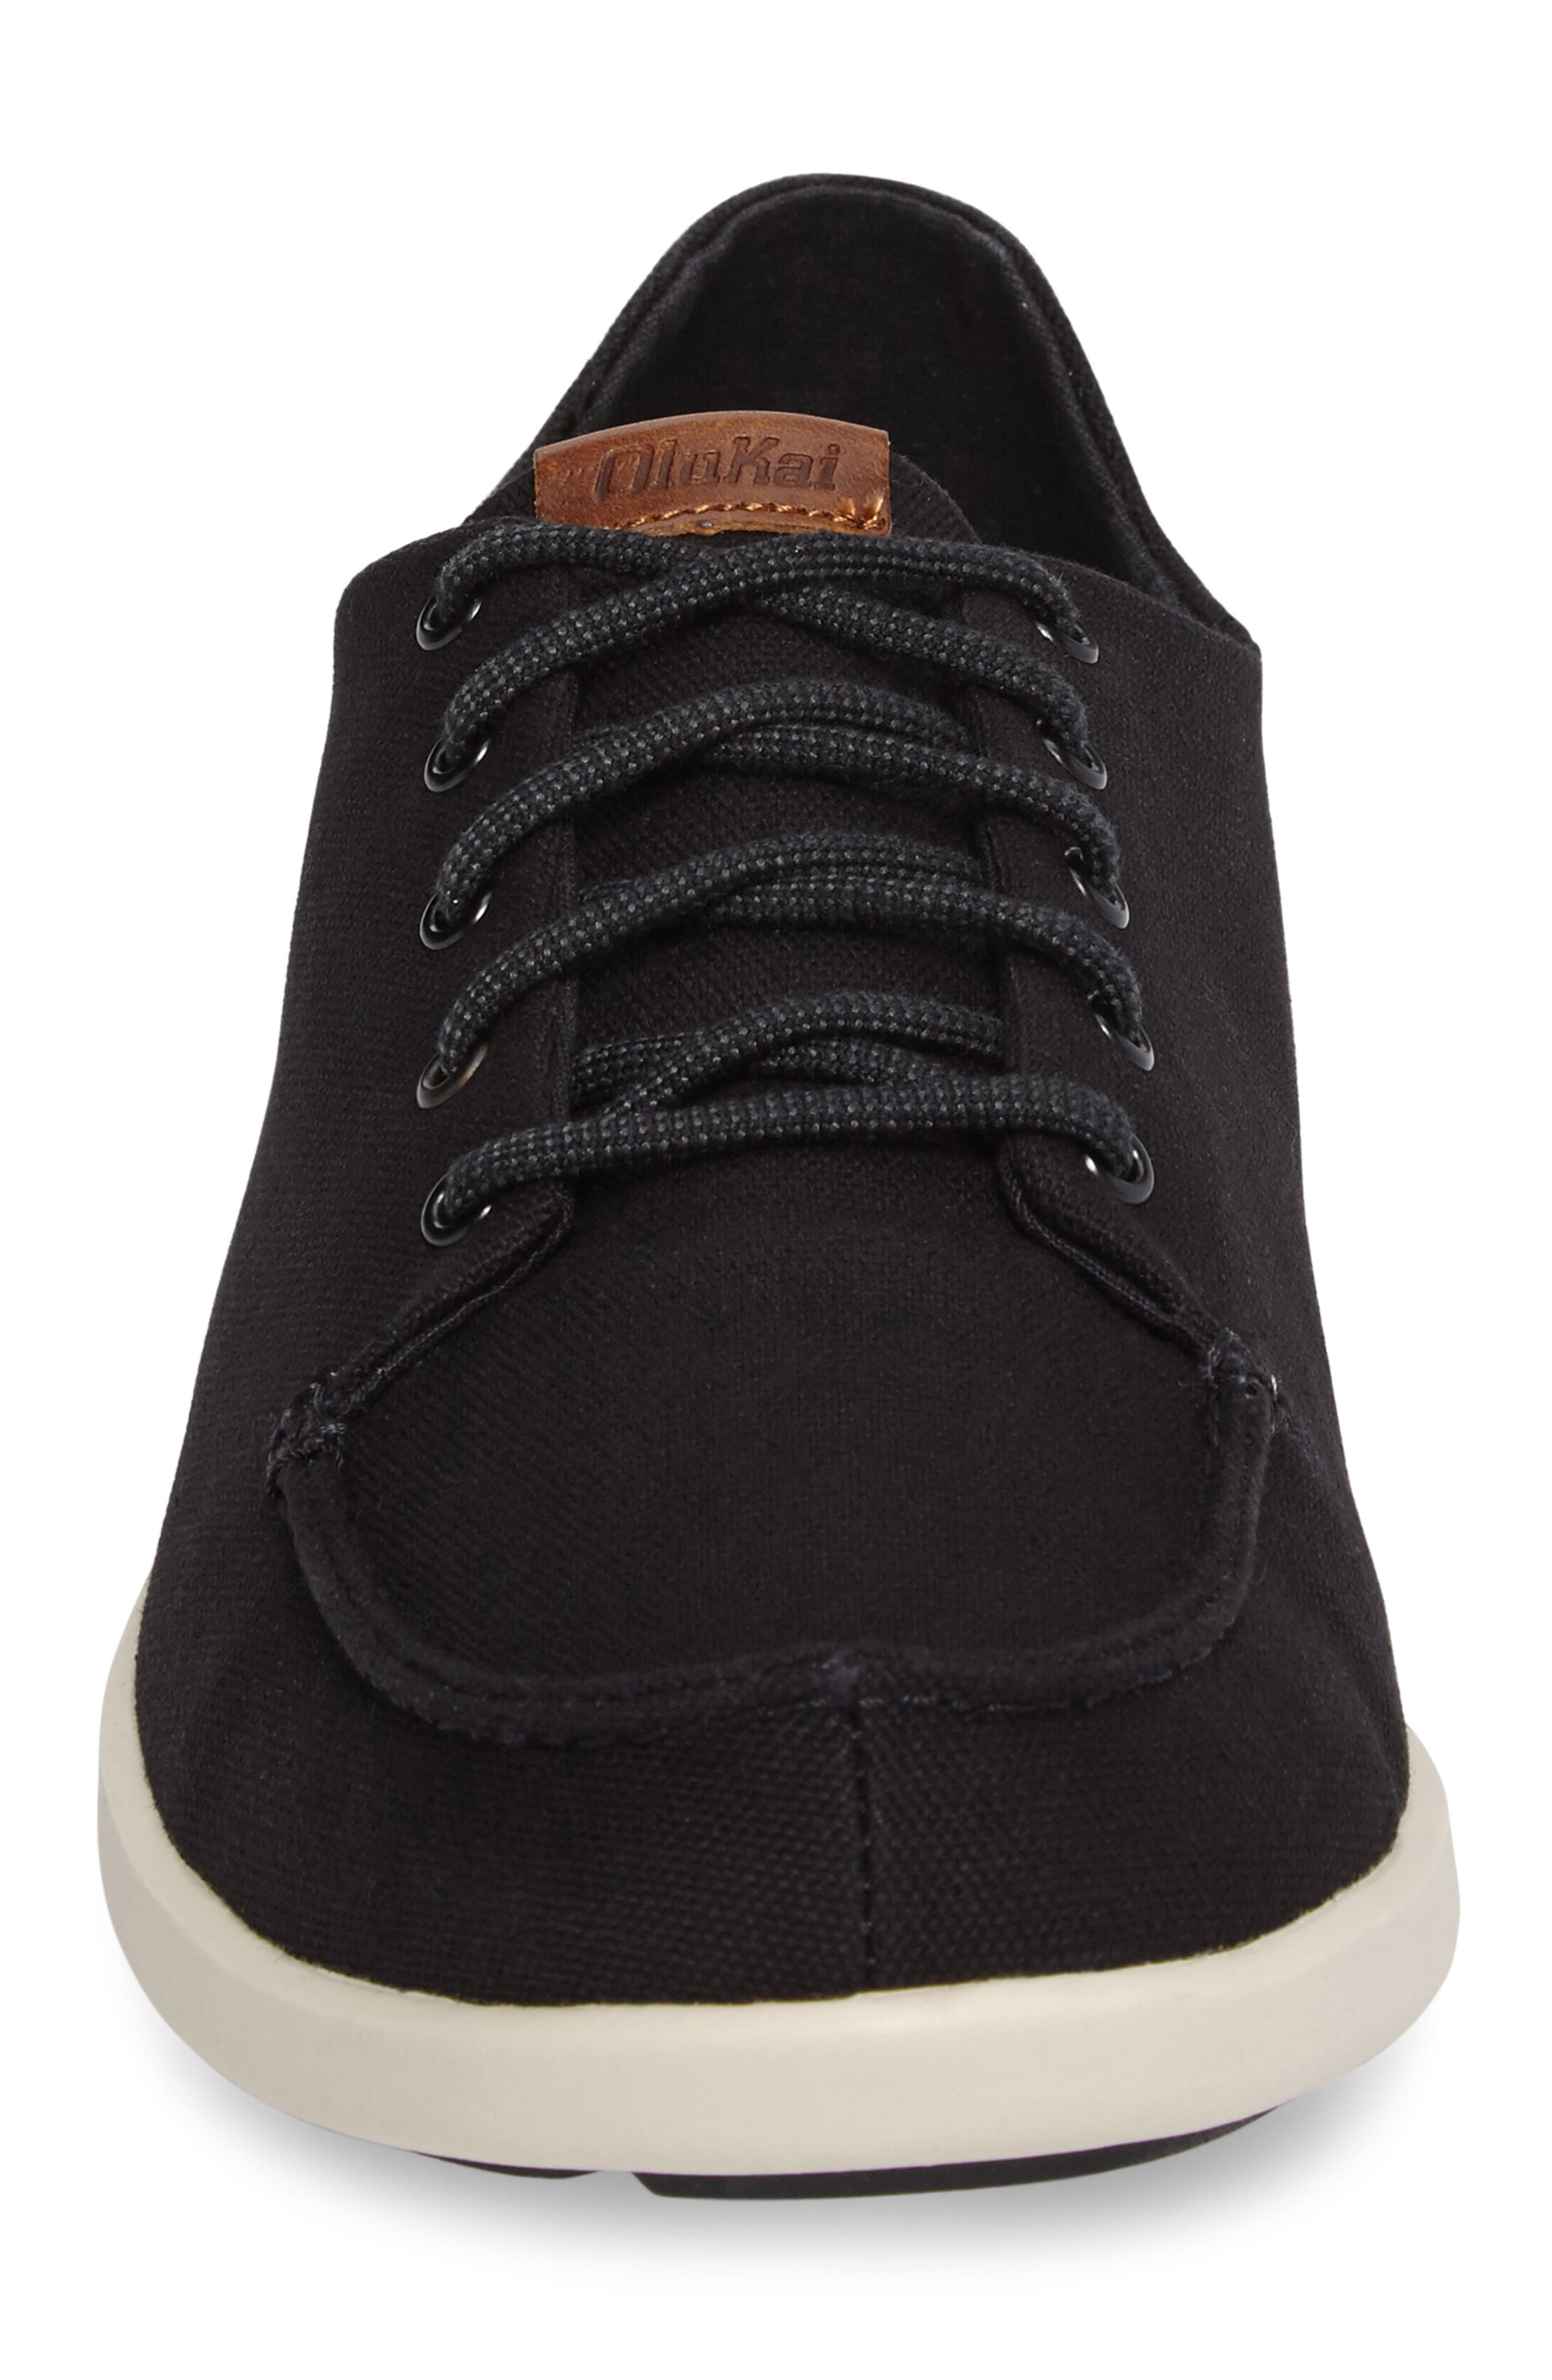 Manoa Sneaker,                             Alternate thumbnail 4, color,                             BLACK/ MUSTARD